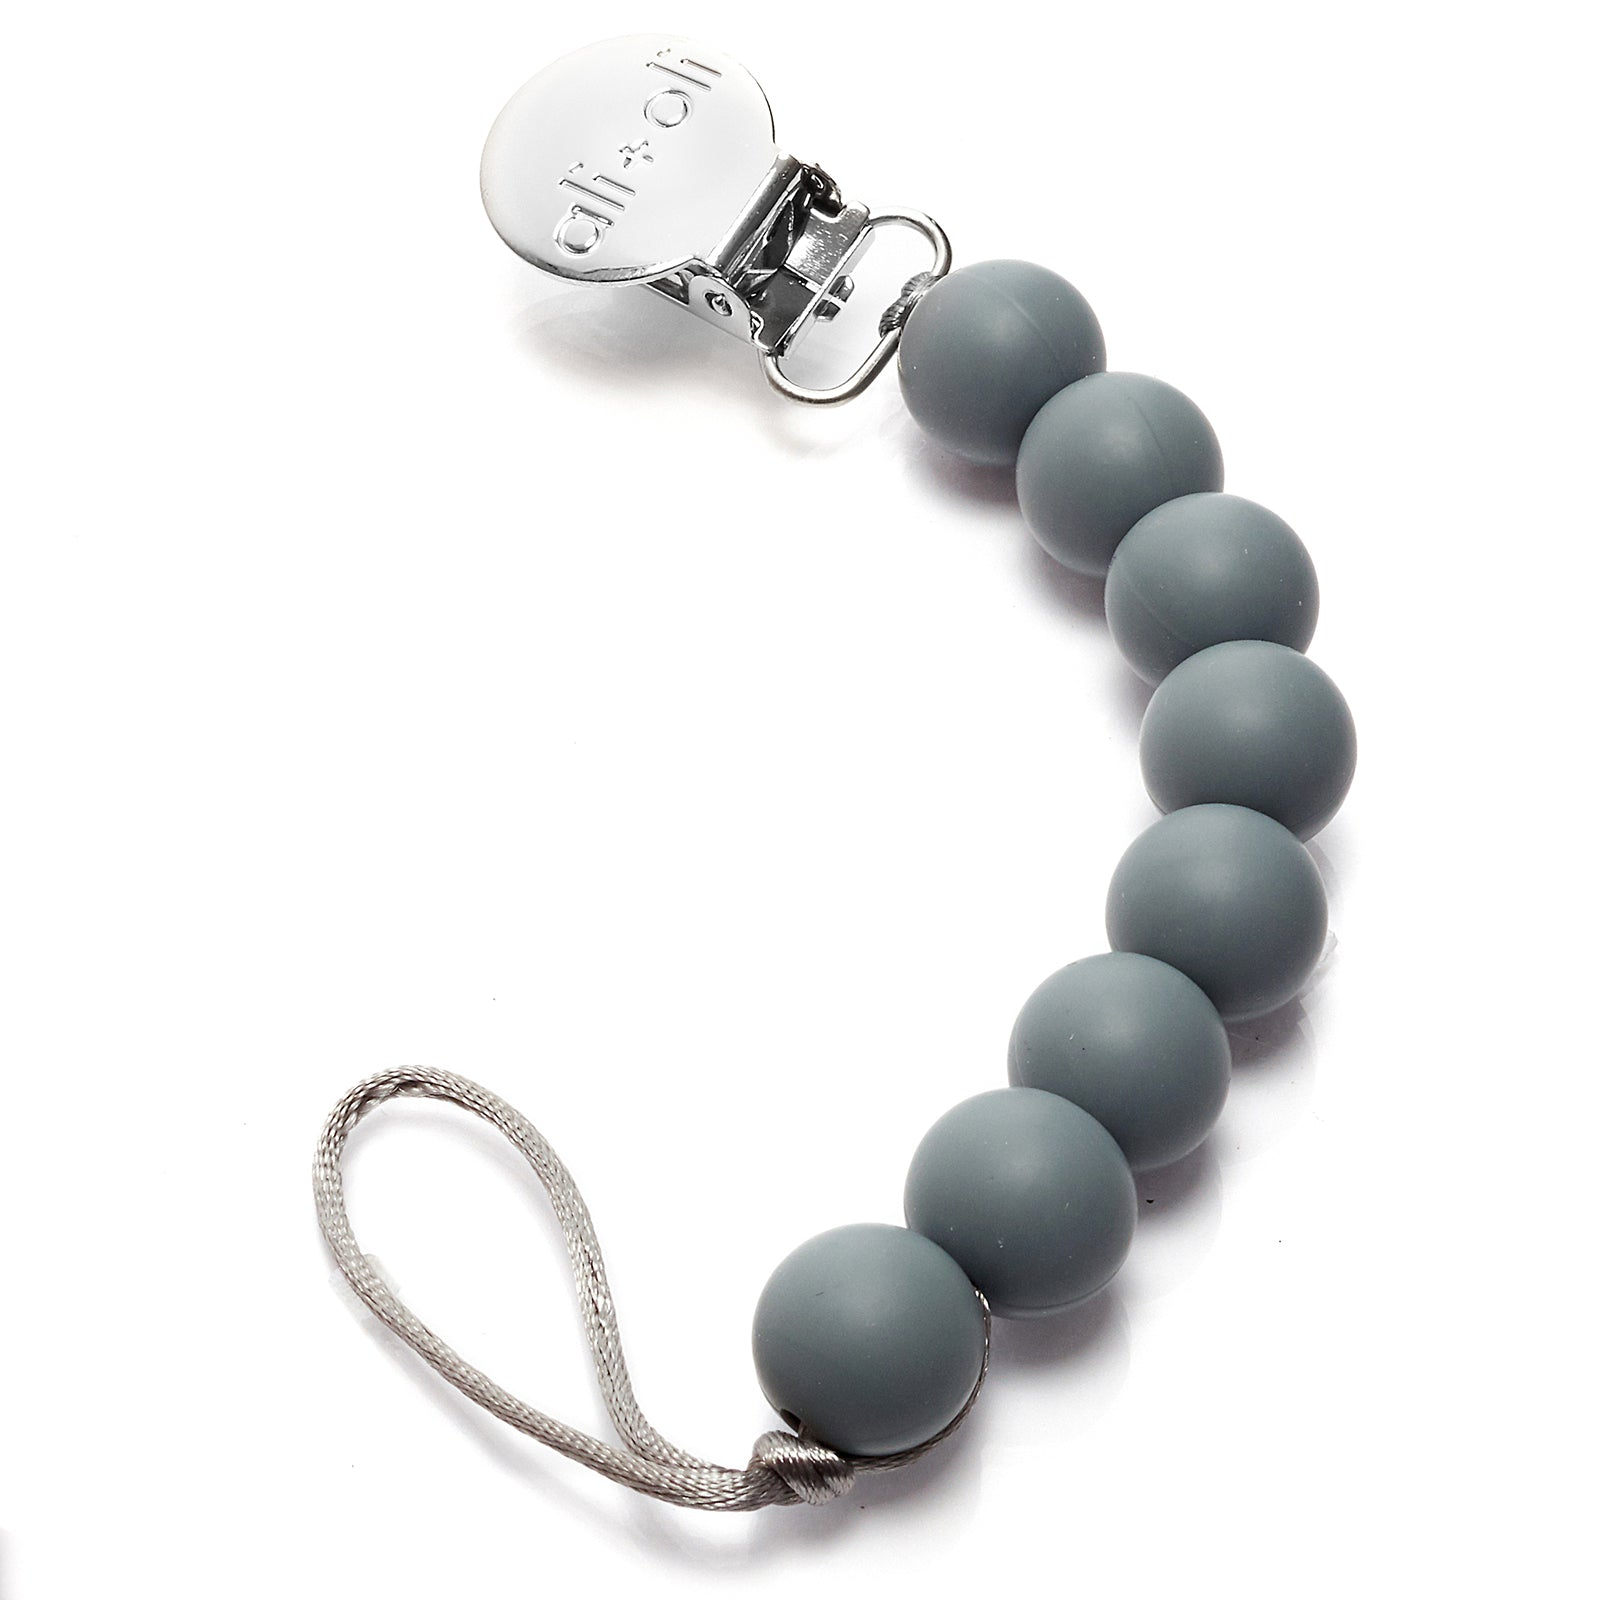 Ali+Oli Modern Pacifier Clip for Baby (Grey) BPA Free Silicone Beads